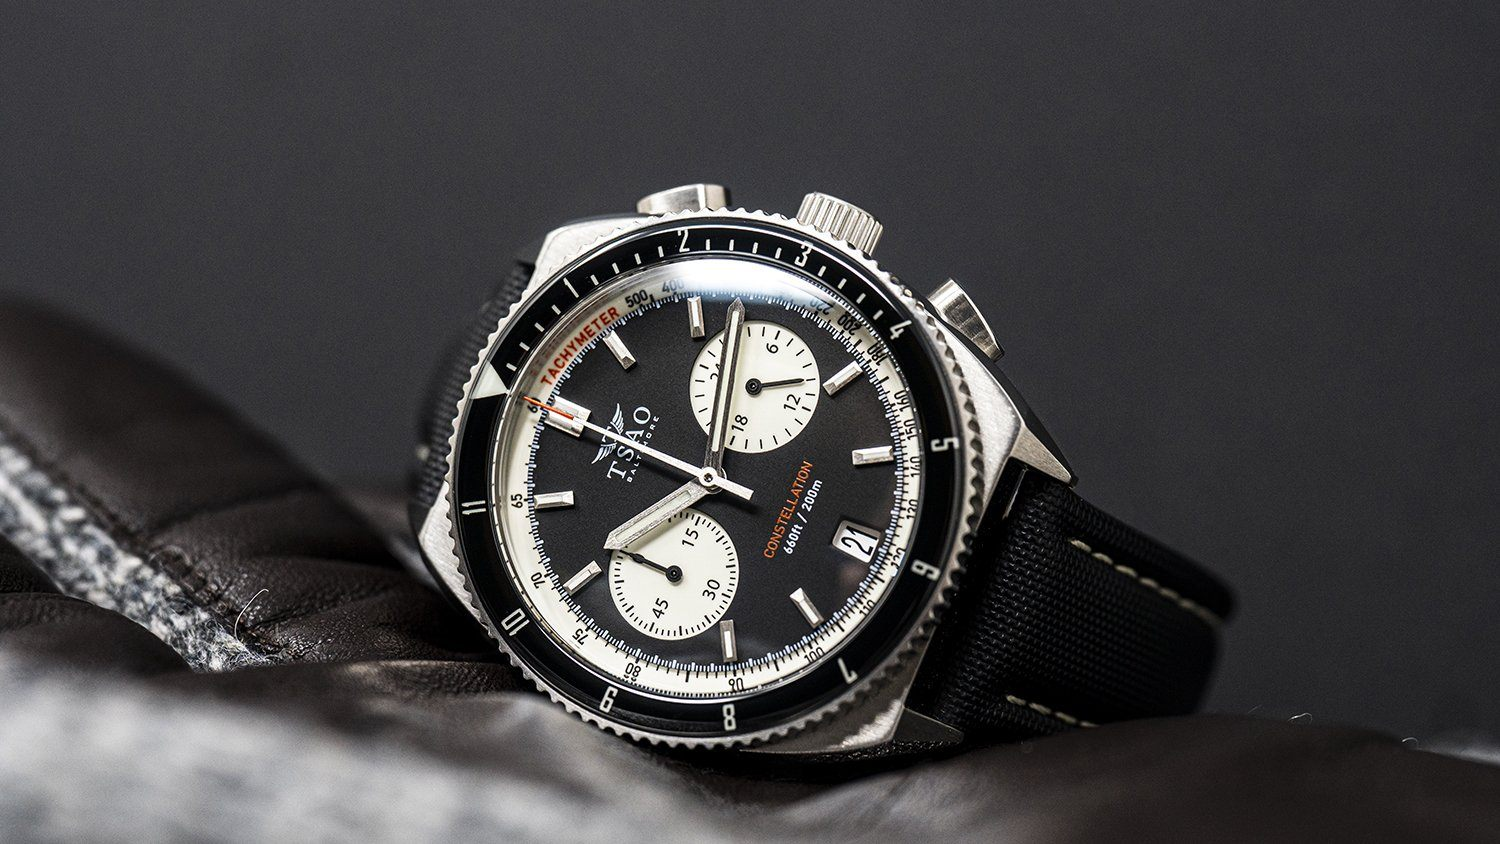 Constellation Chrono-Diver - Reverse Panda